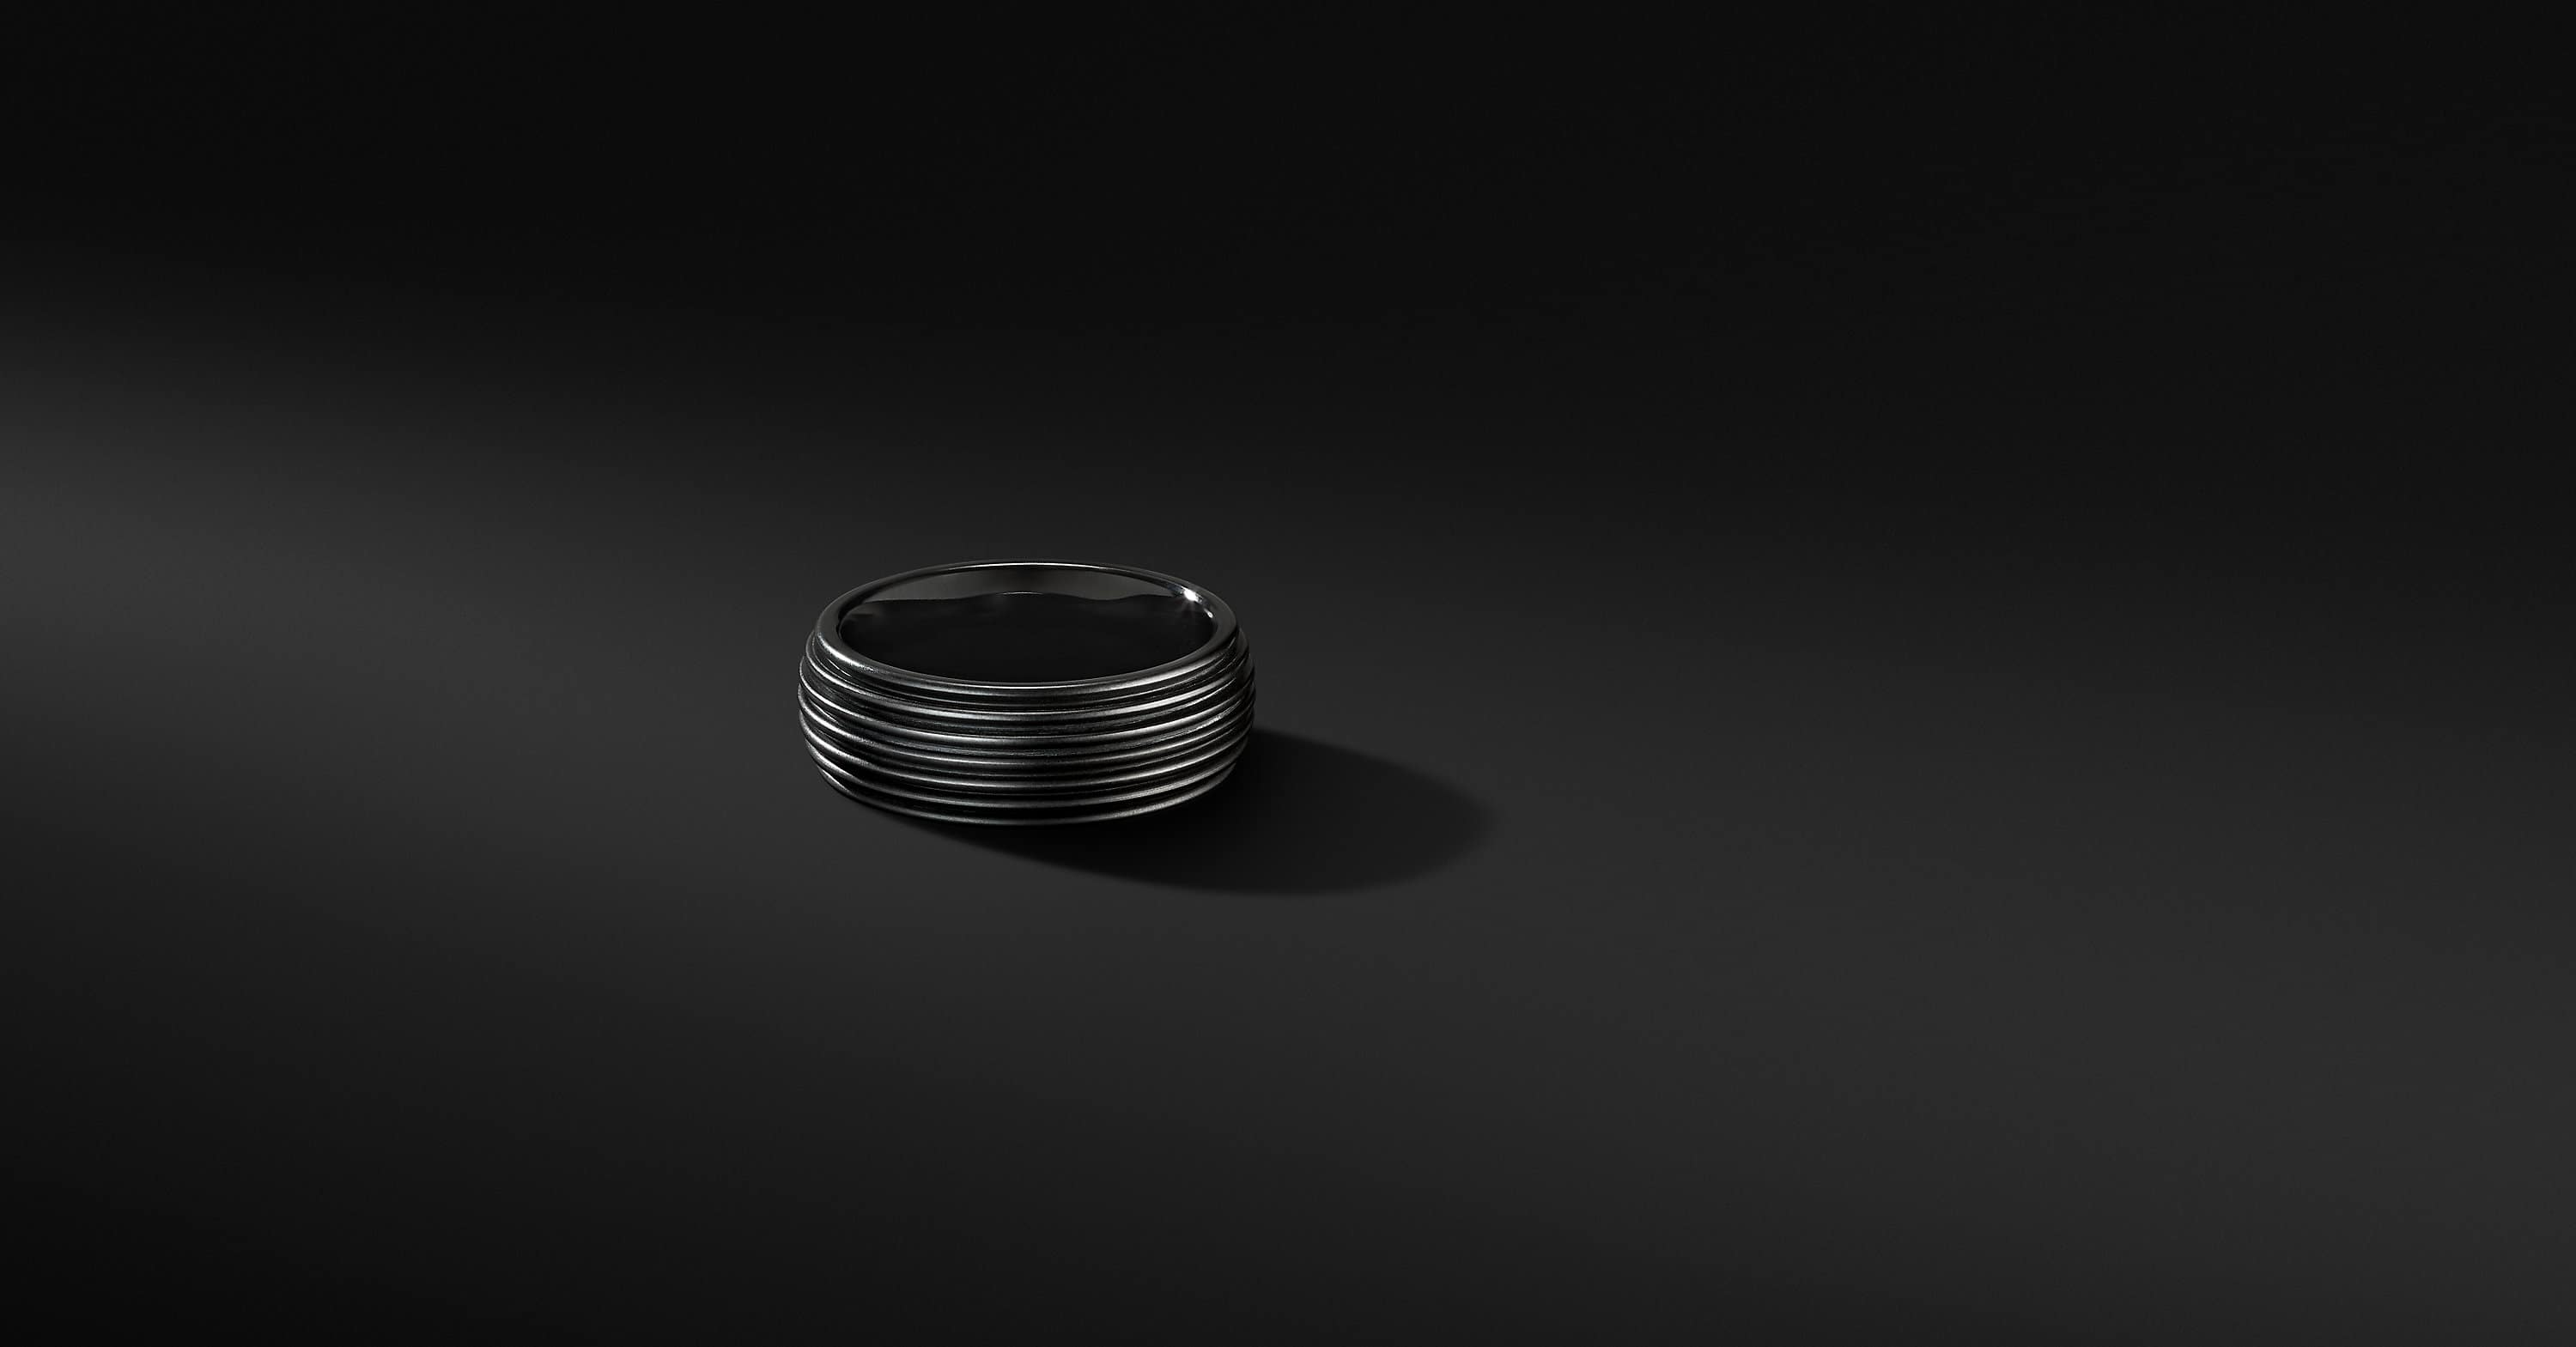 Royal Cord Band Ring in Black Titanium, 8mm